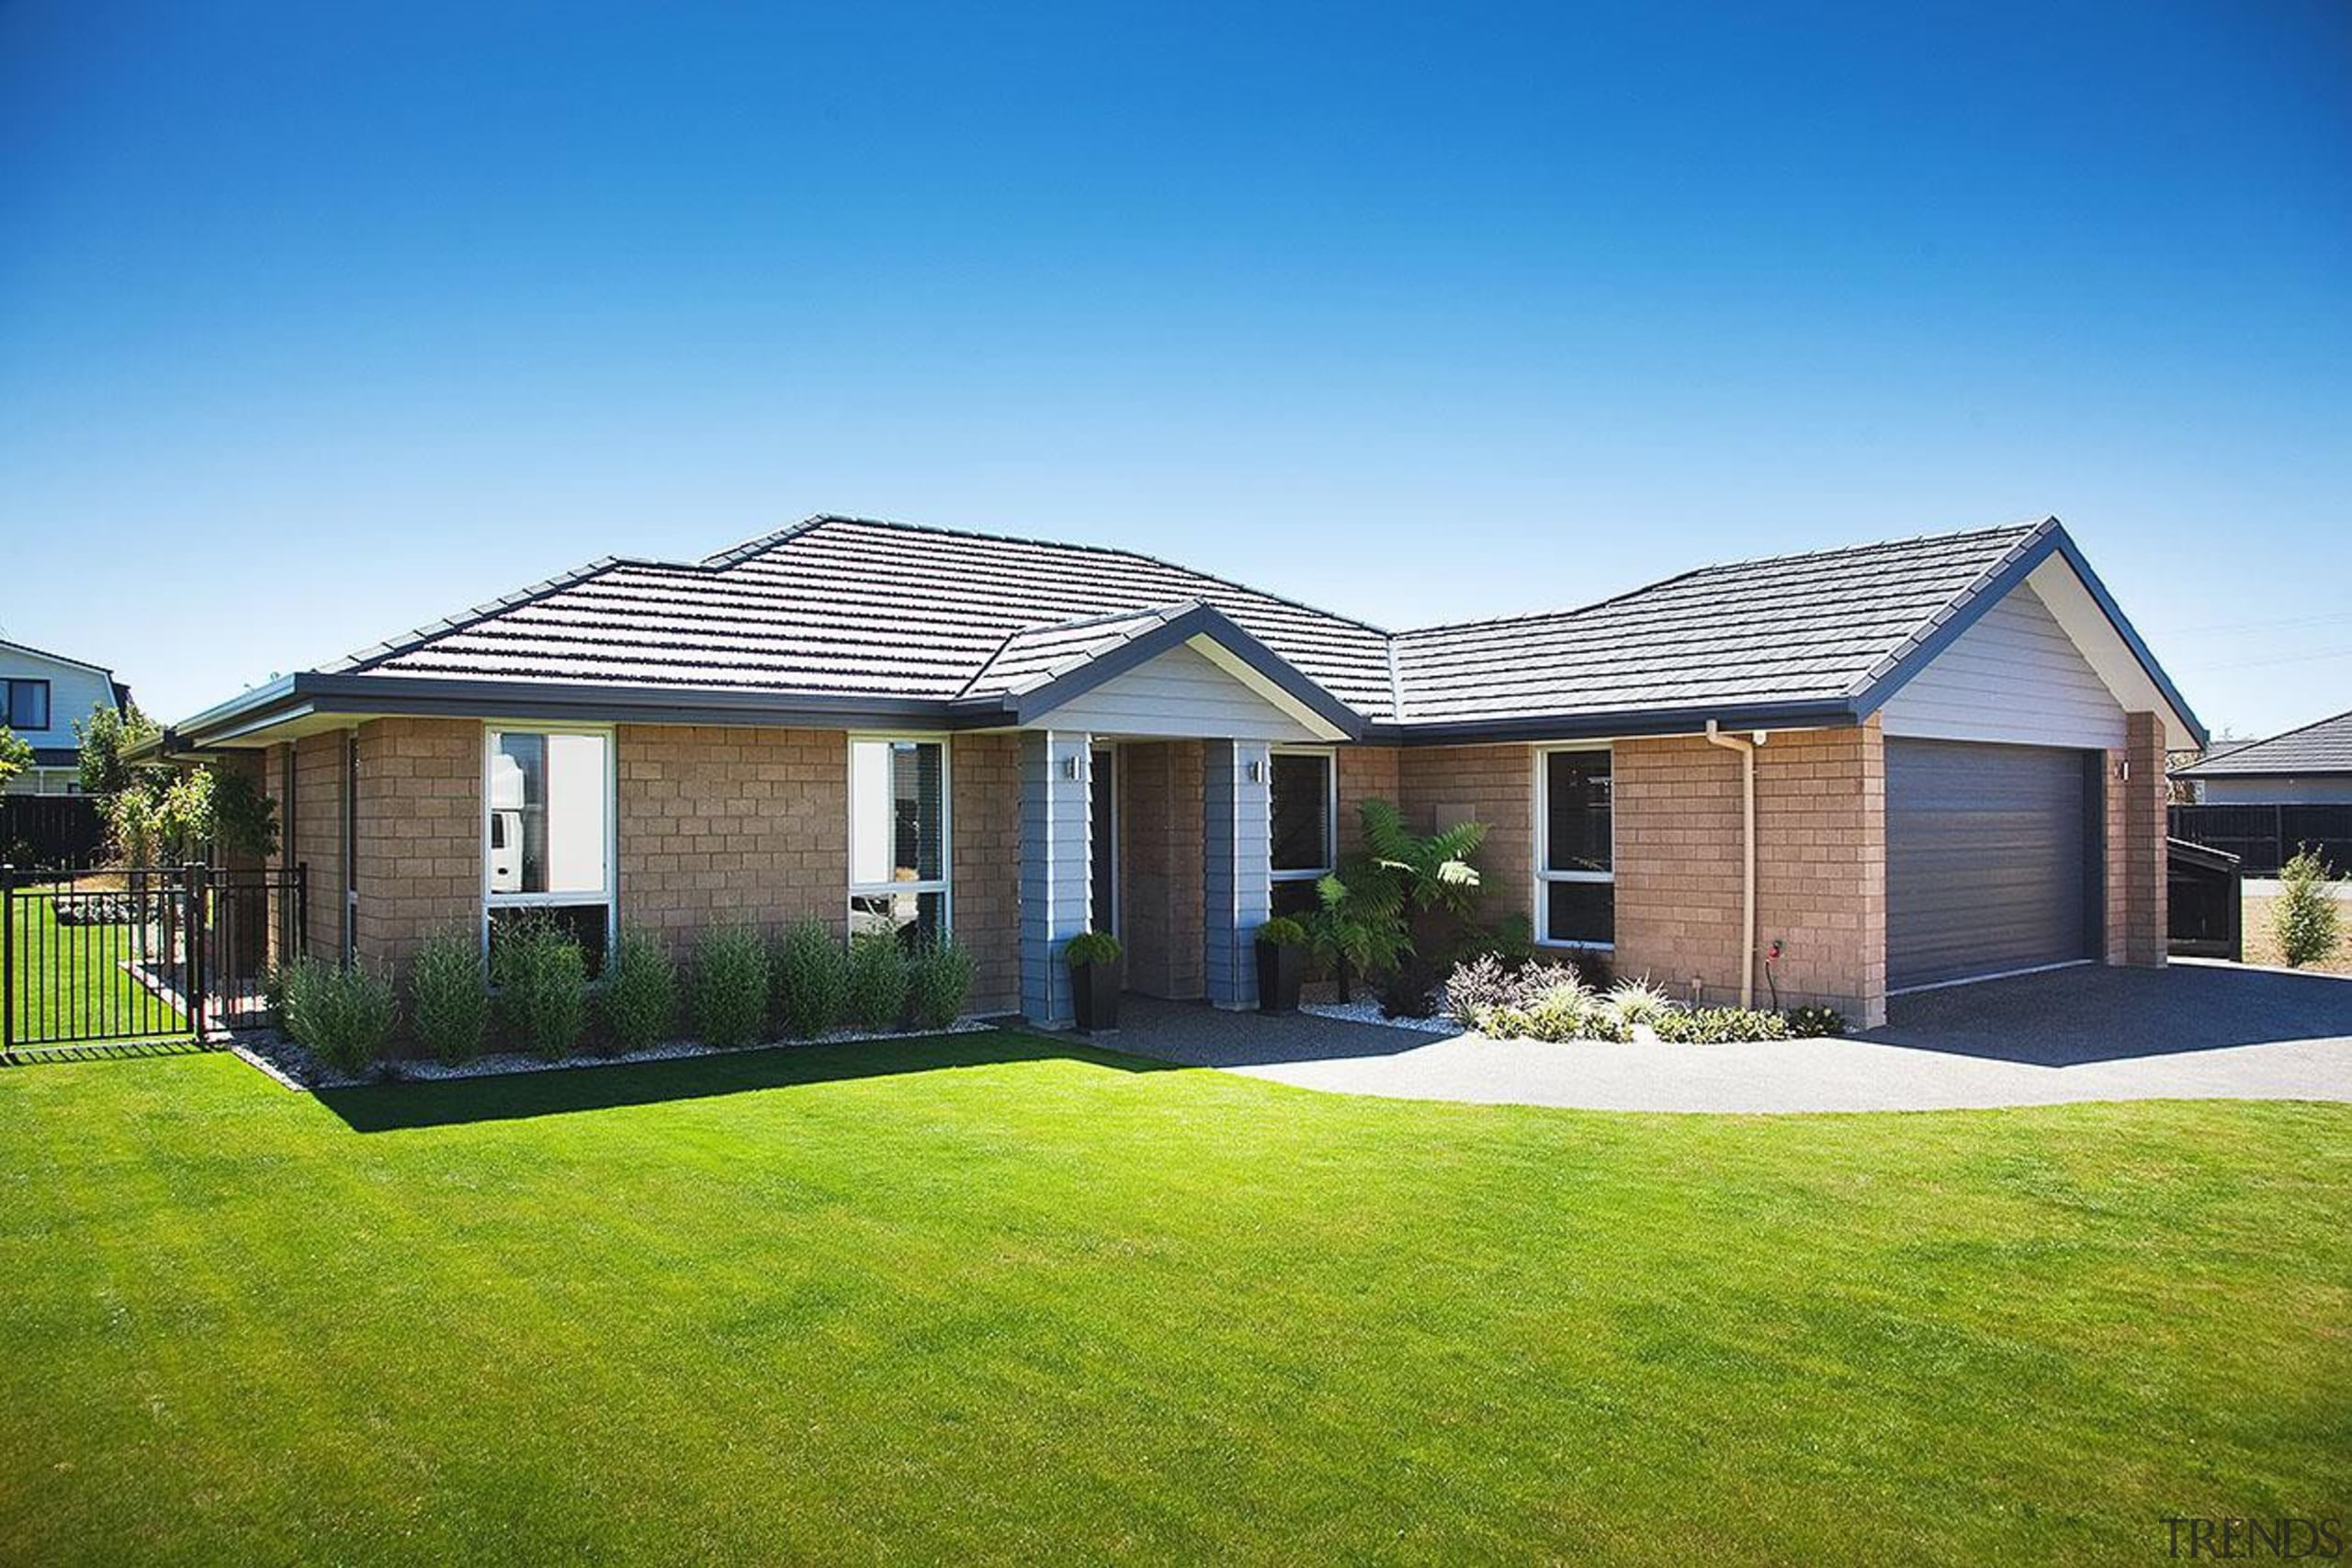 For more information, please visit www.gjgardner.co.nz cottage, elevation, estate, facade, farmhouse, grass, home, house, land lot, lawn, property, real estate, residential area, roof, siding, sky, suburb, window, yard